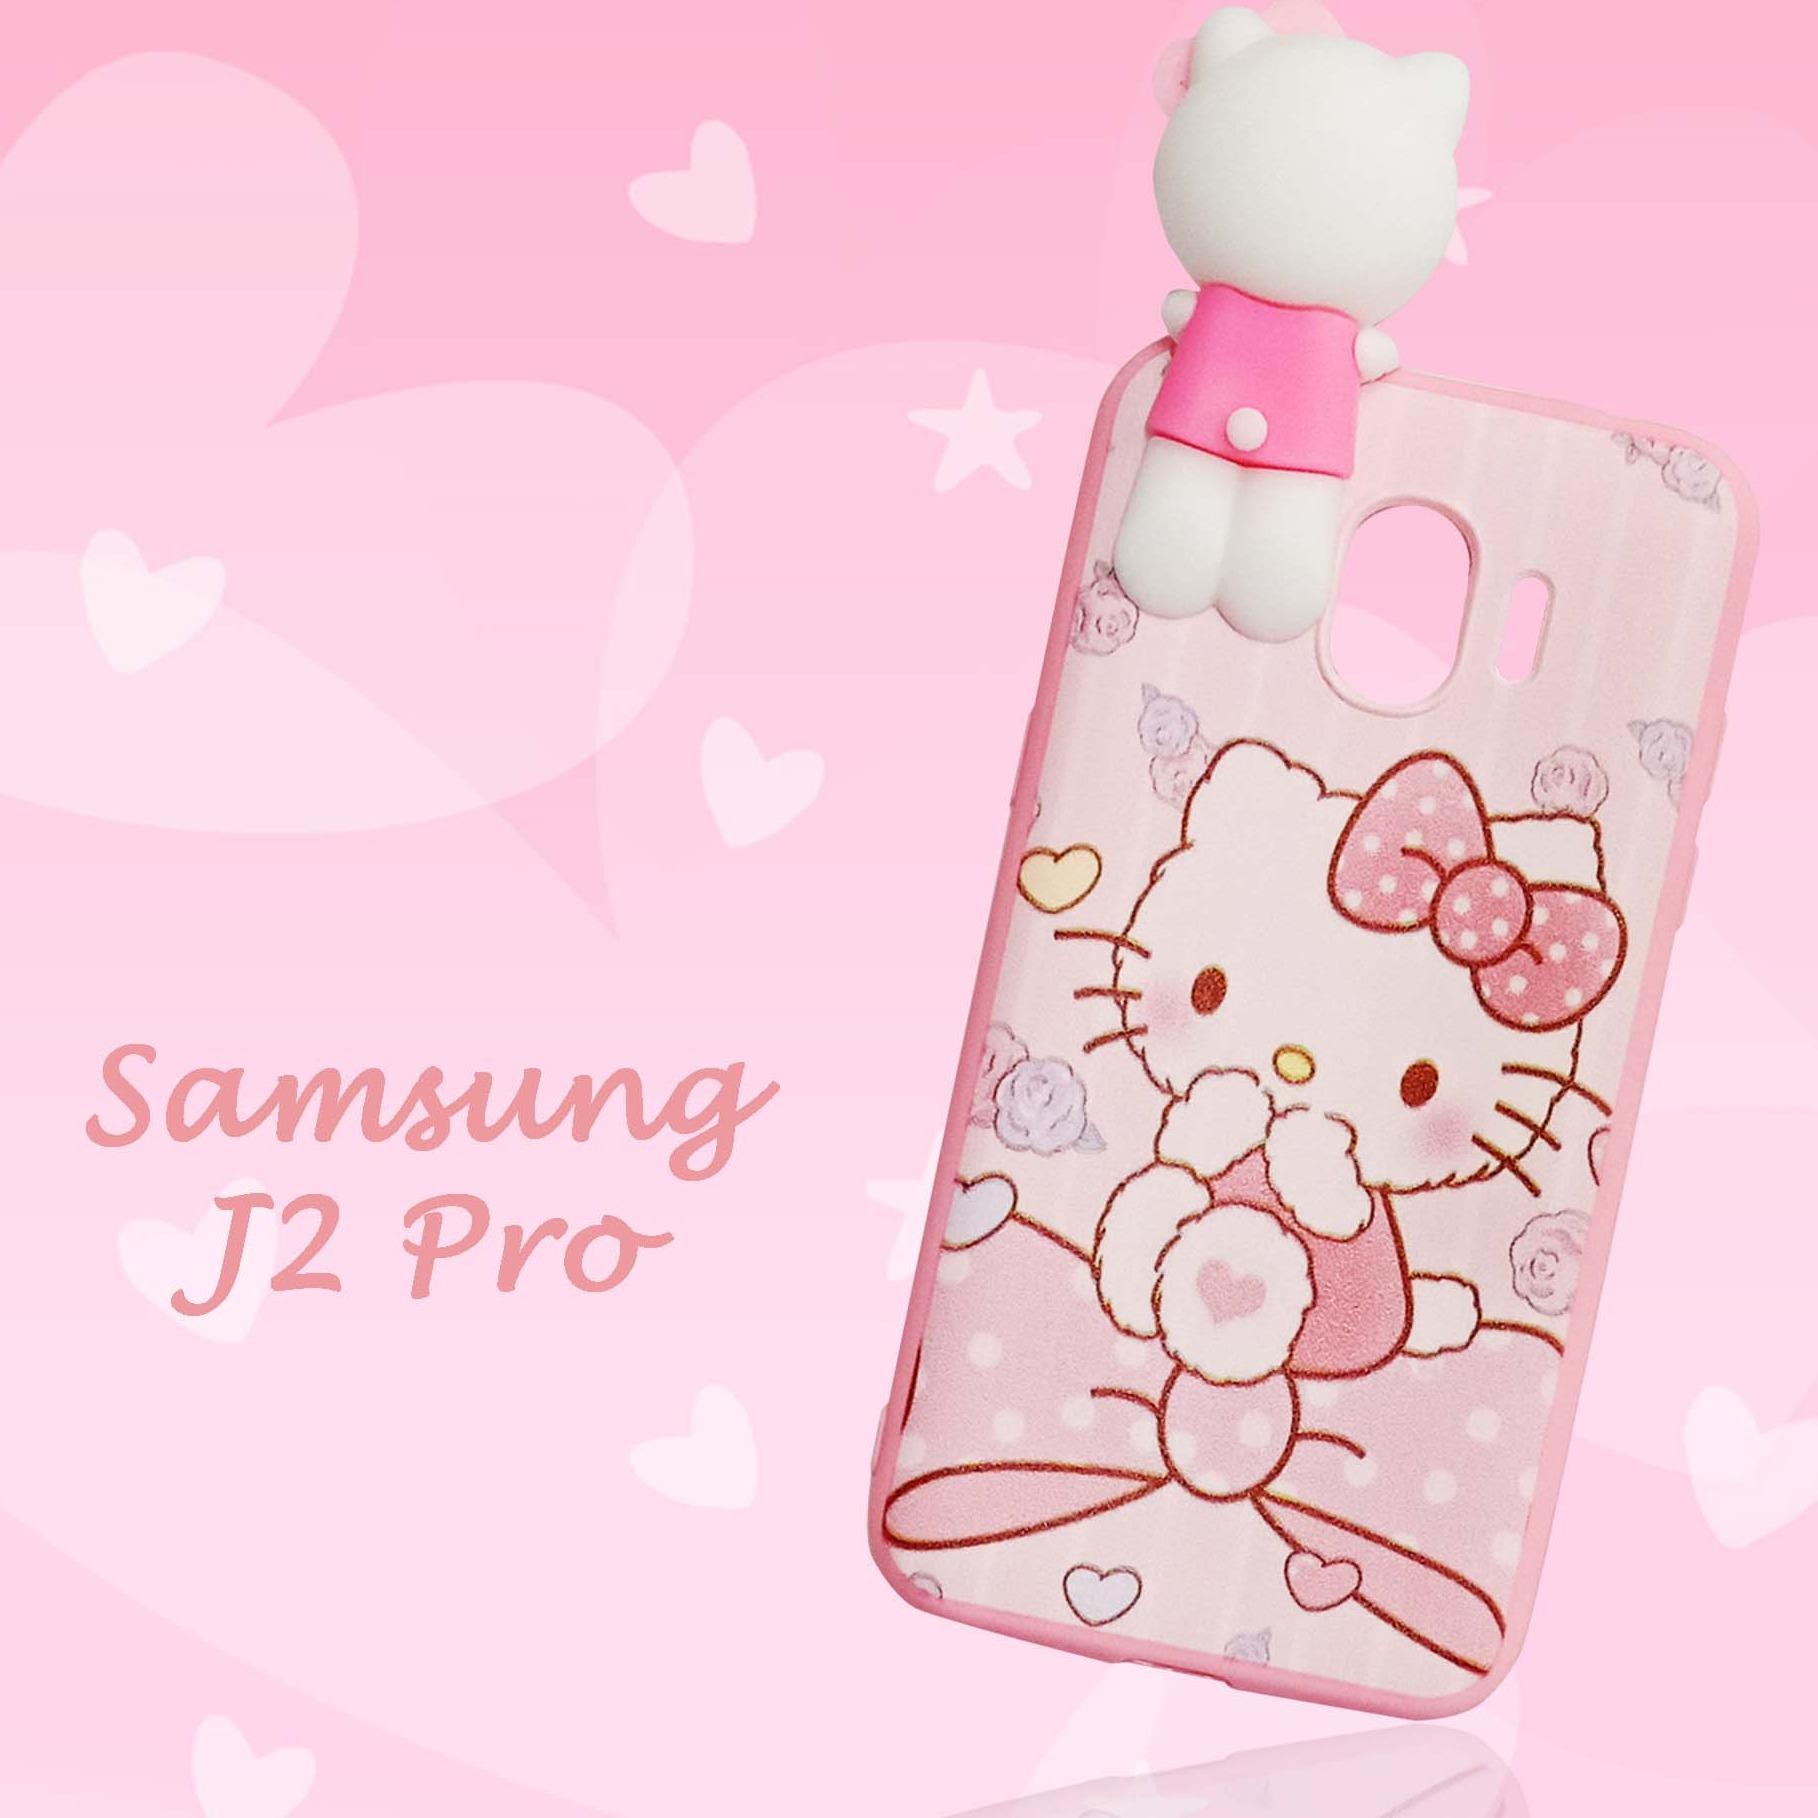 Softcase Hello Kitty Pink Climb New For Samsung Galaxy J2 Pro 2018